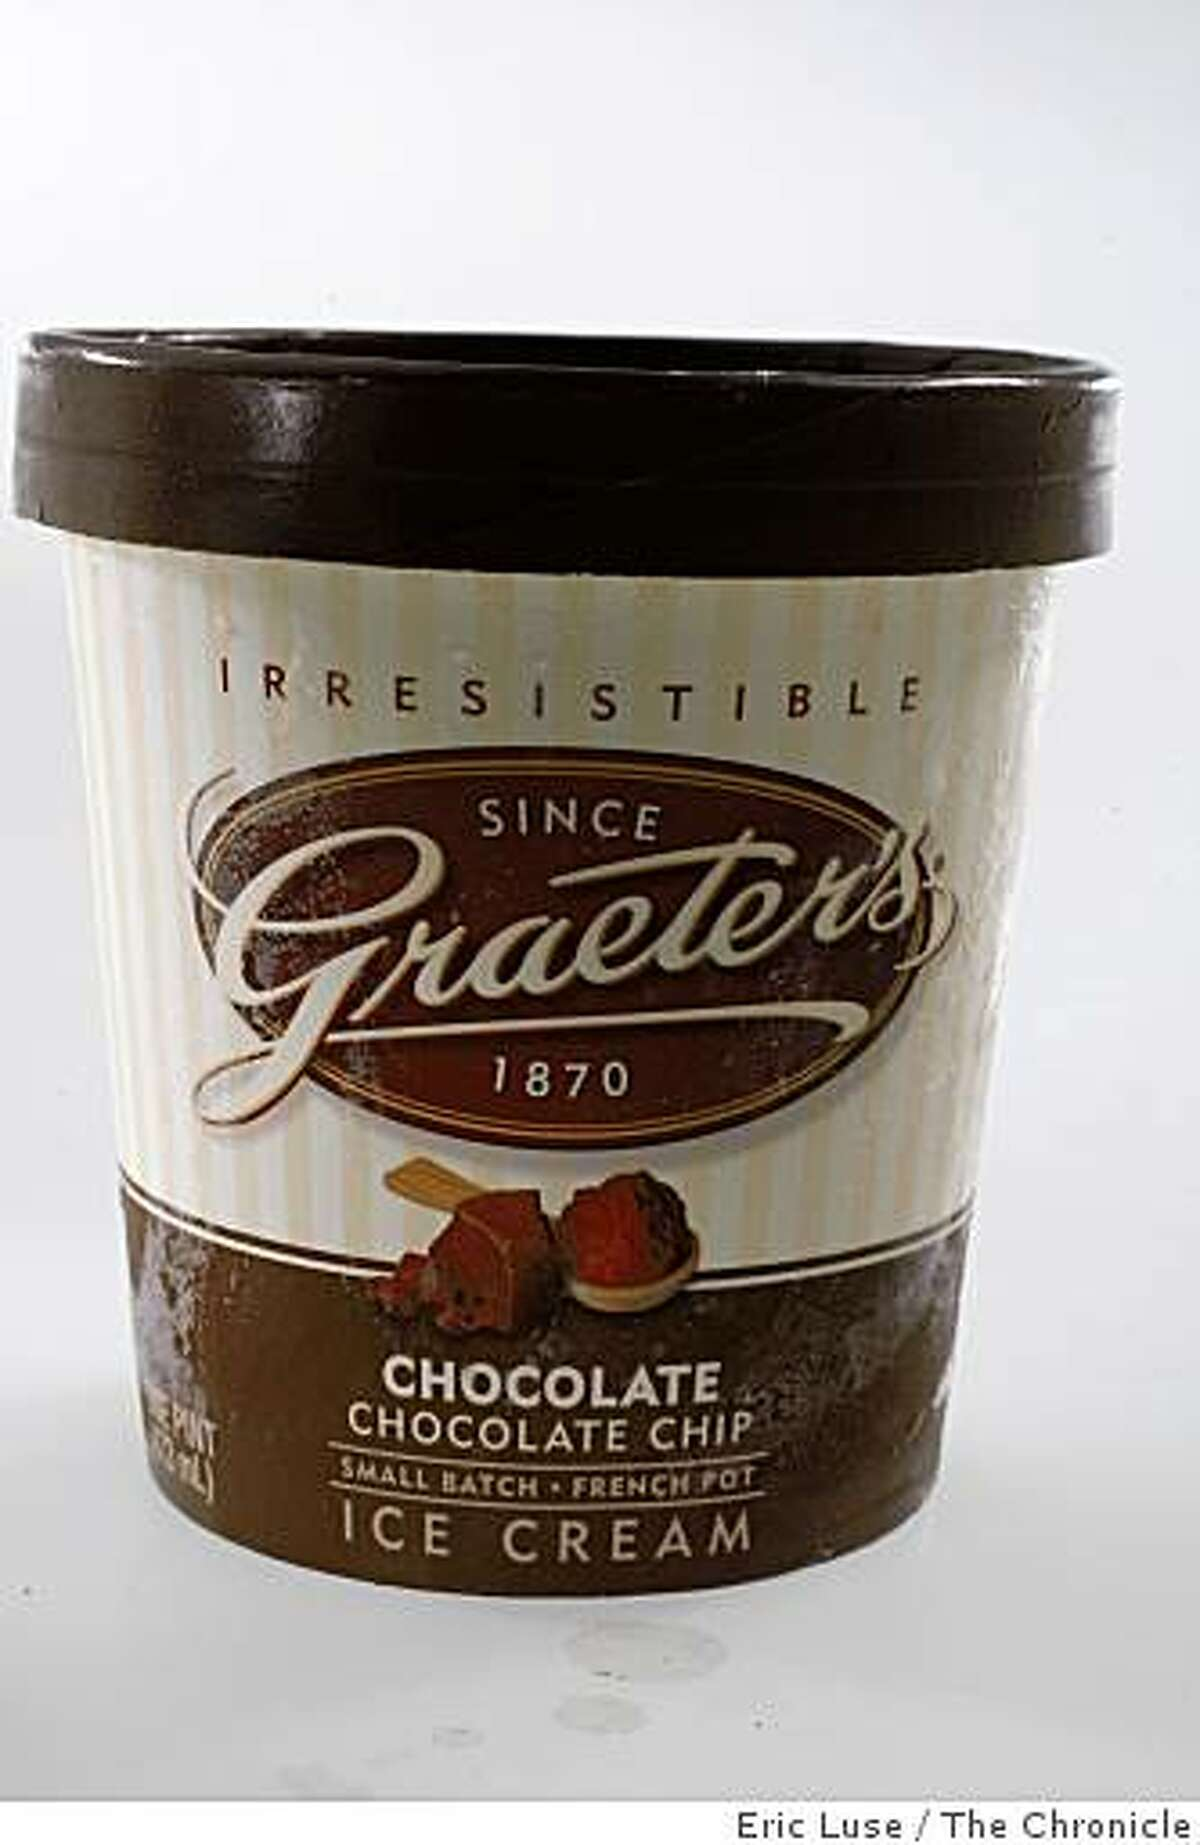 Ohio, Graeter's Ice Cream. The Great American Food Fest at Shoreline on June 13 photographed on Wednesday, June 3, 2009.